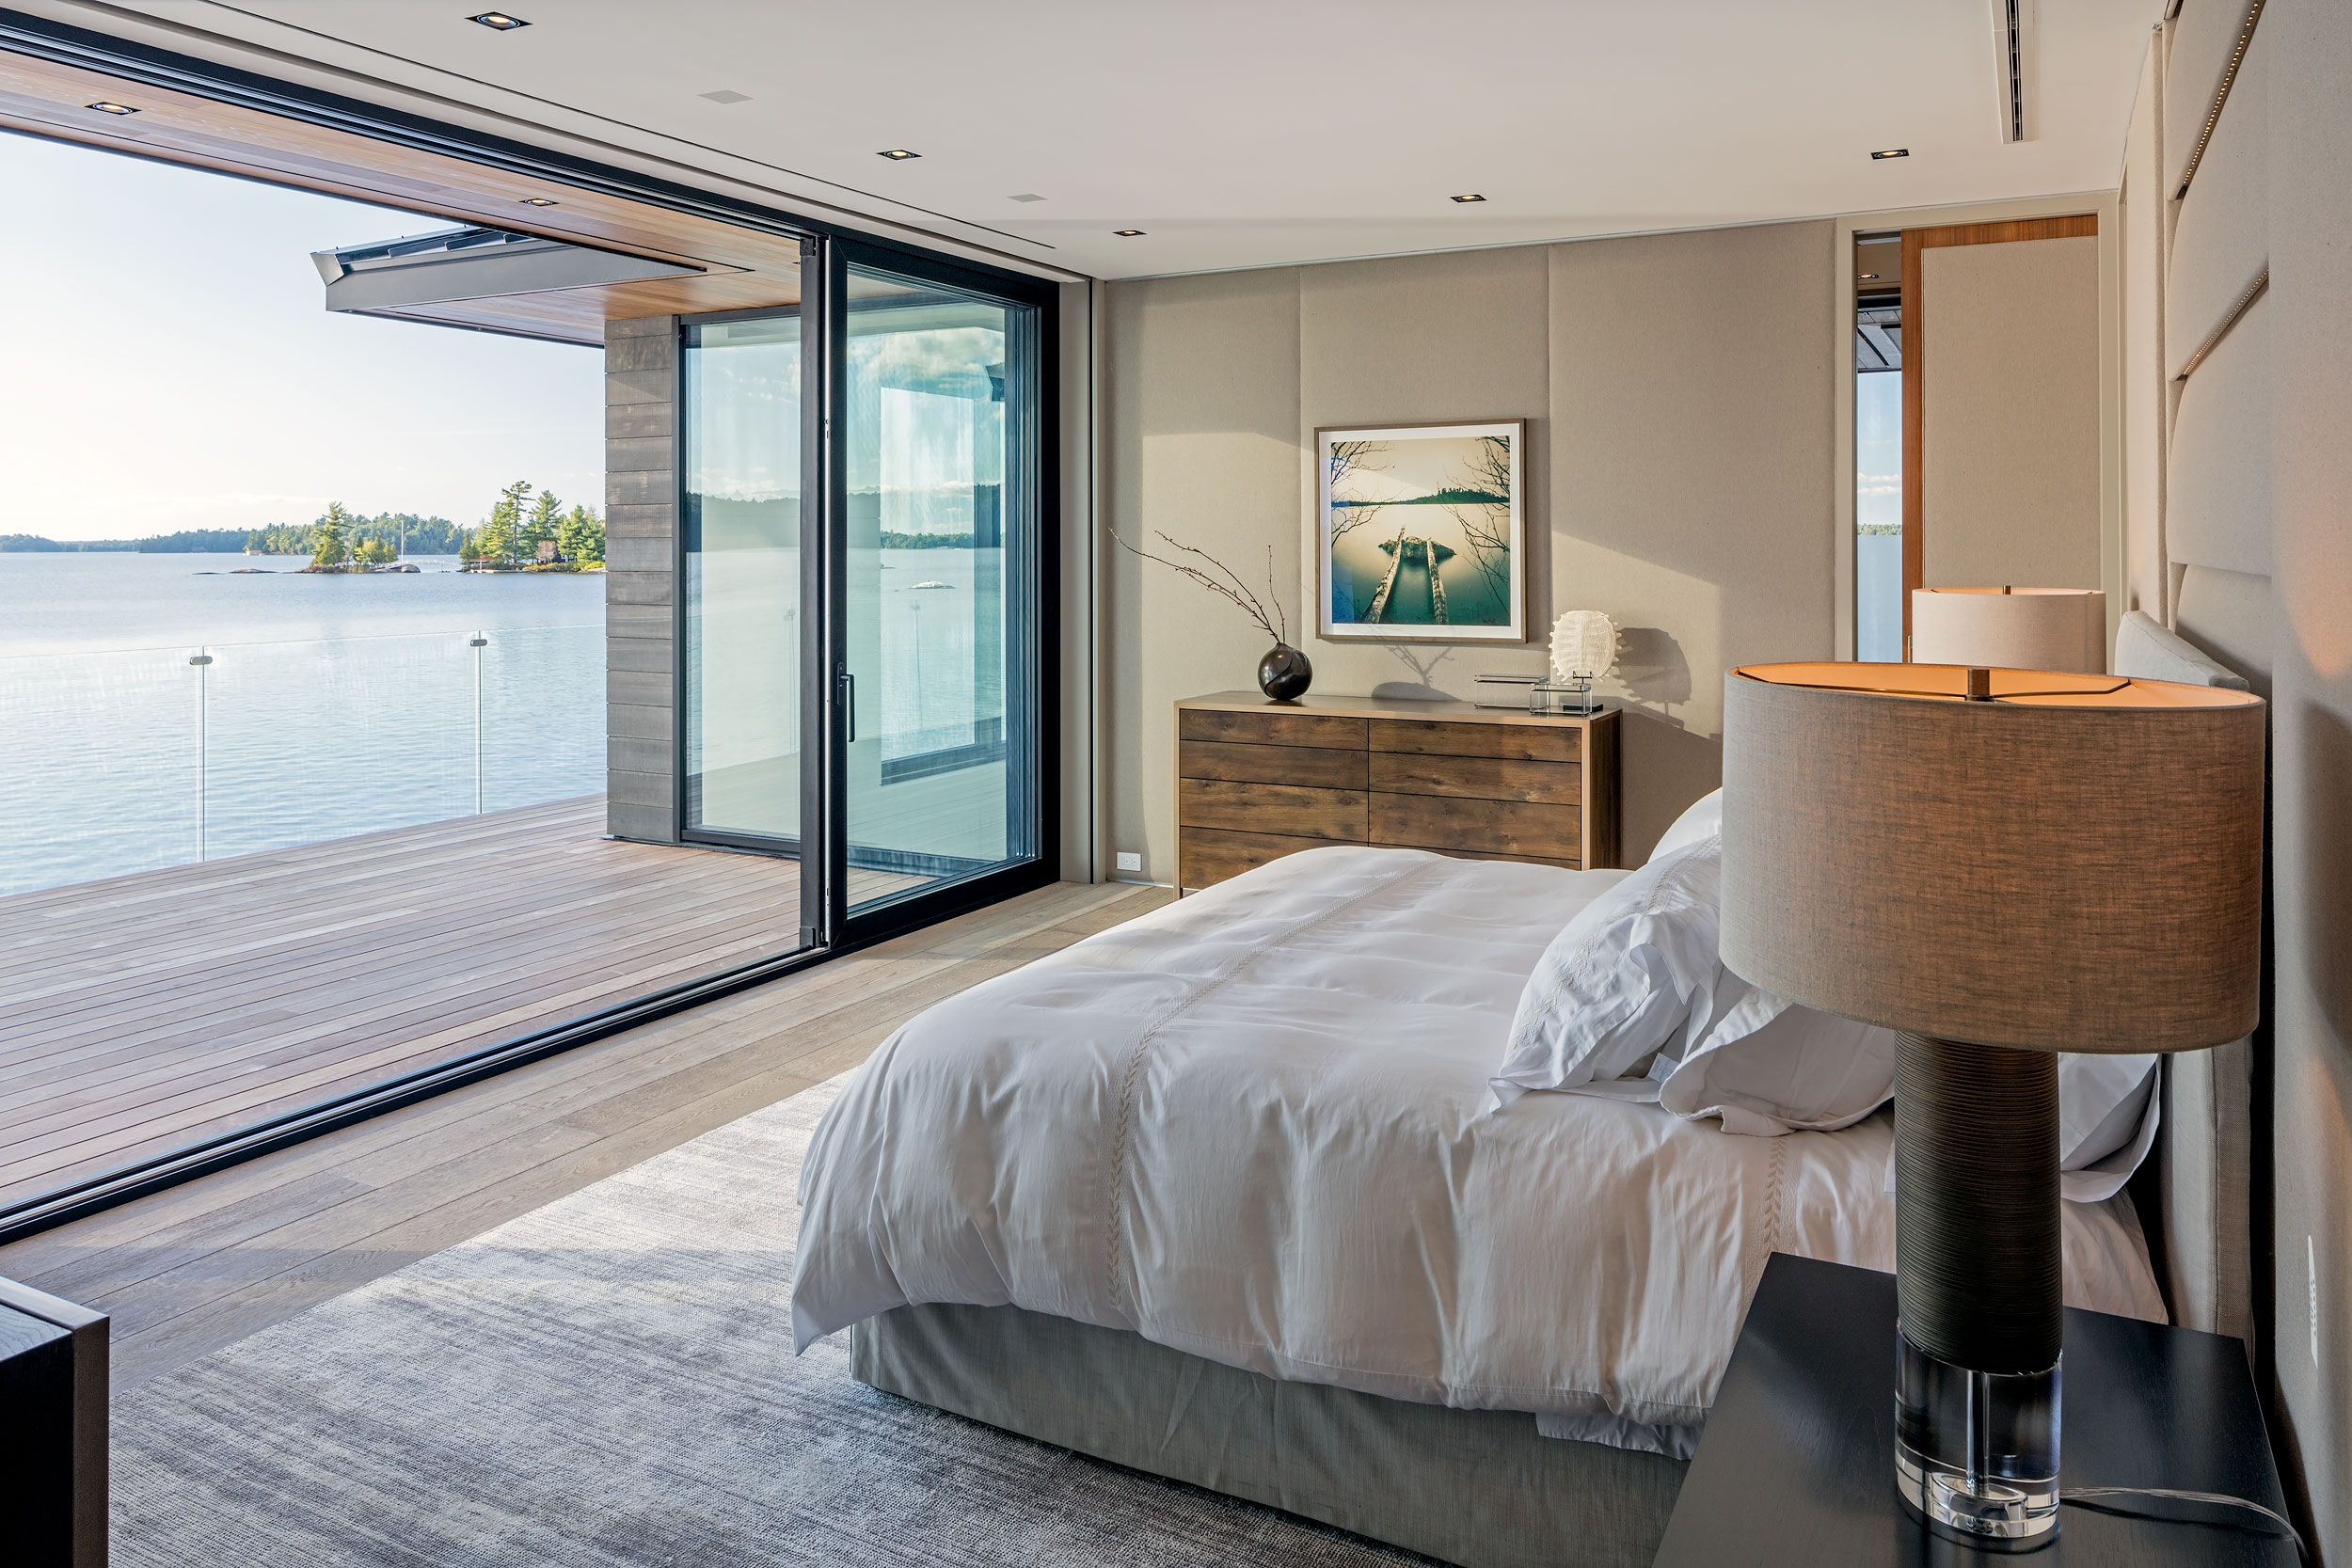 Guest bedroom on a lake